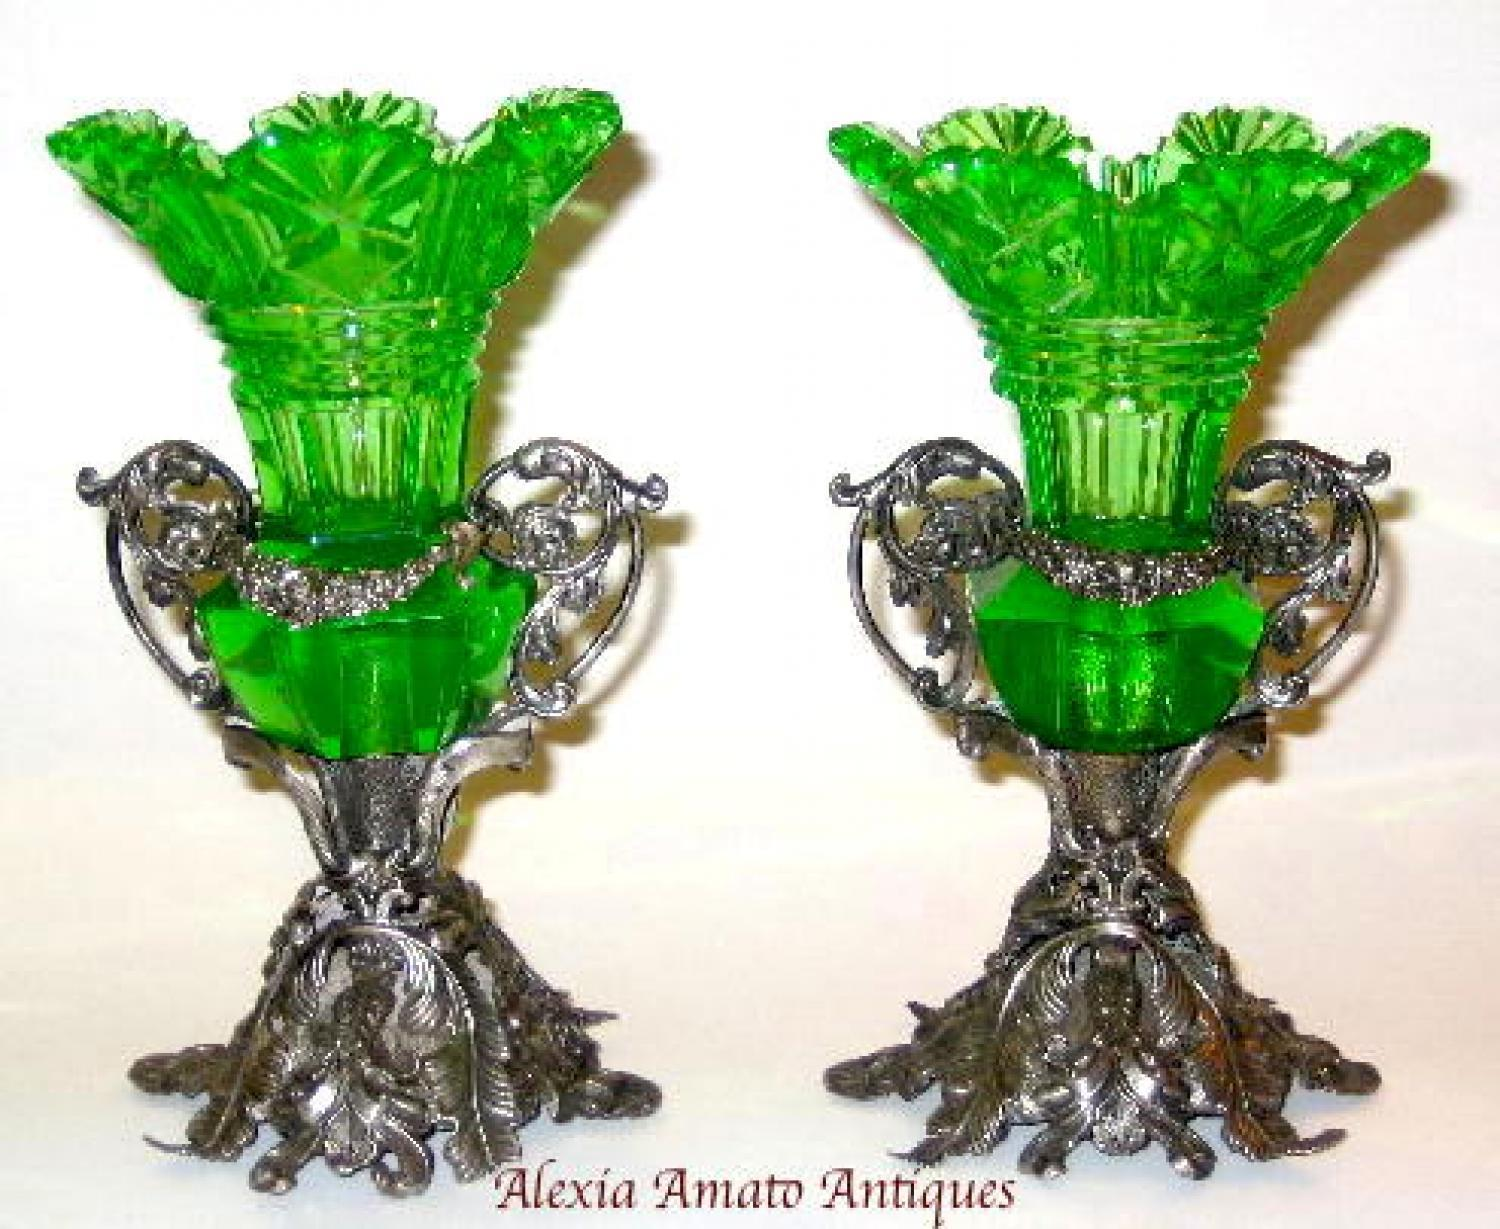 A Pair of Green Uranium Glass Vases